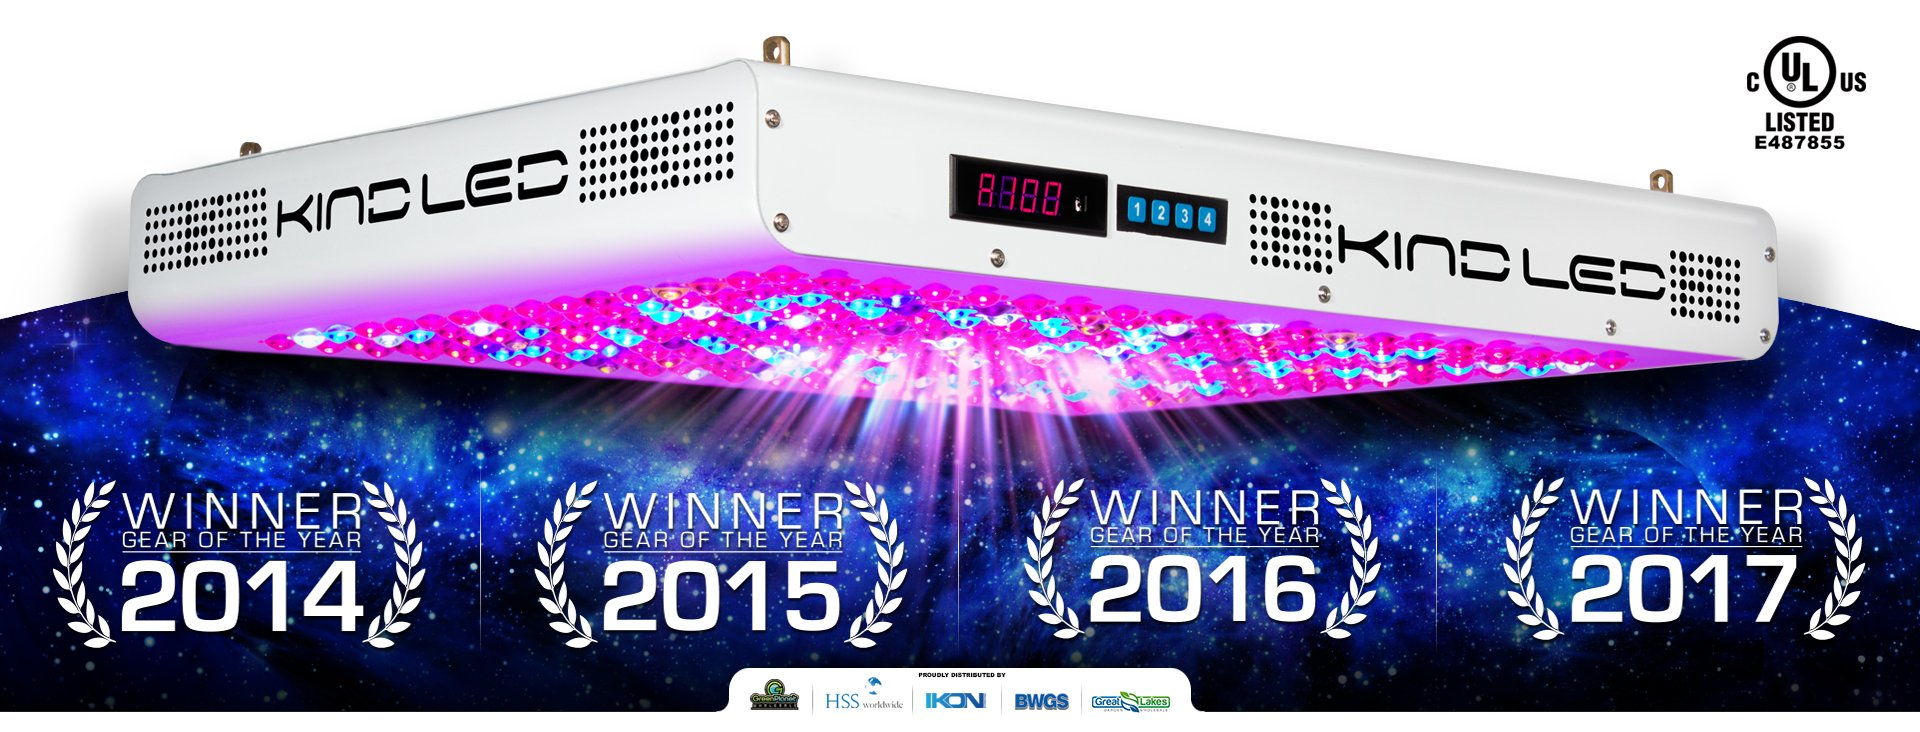 Best Grow Light 2017